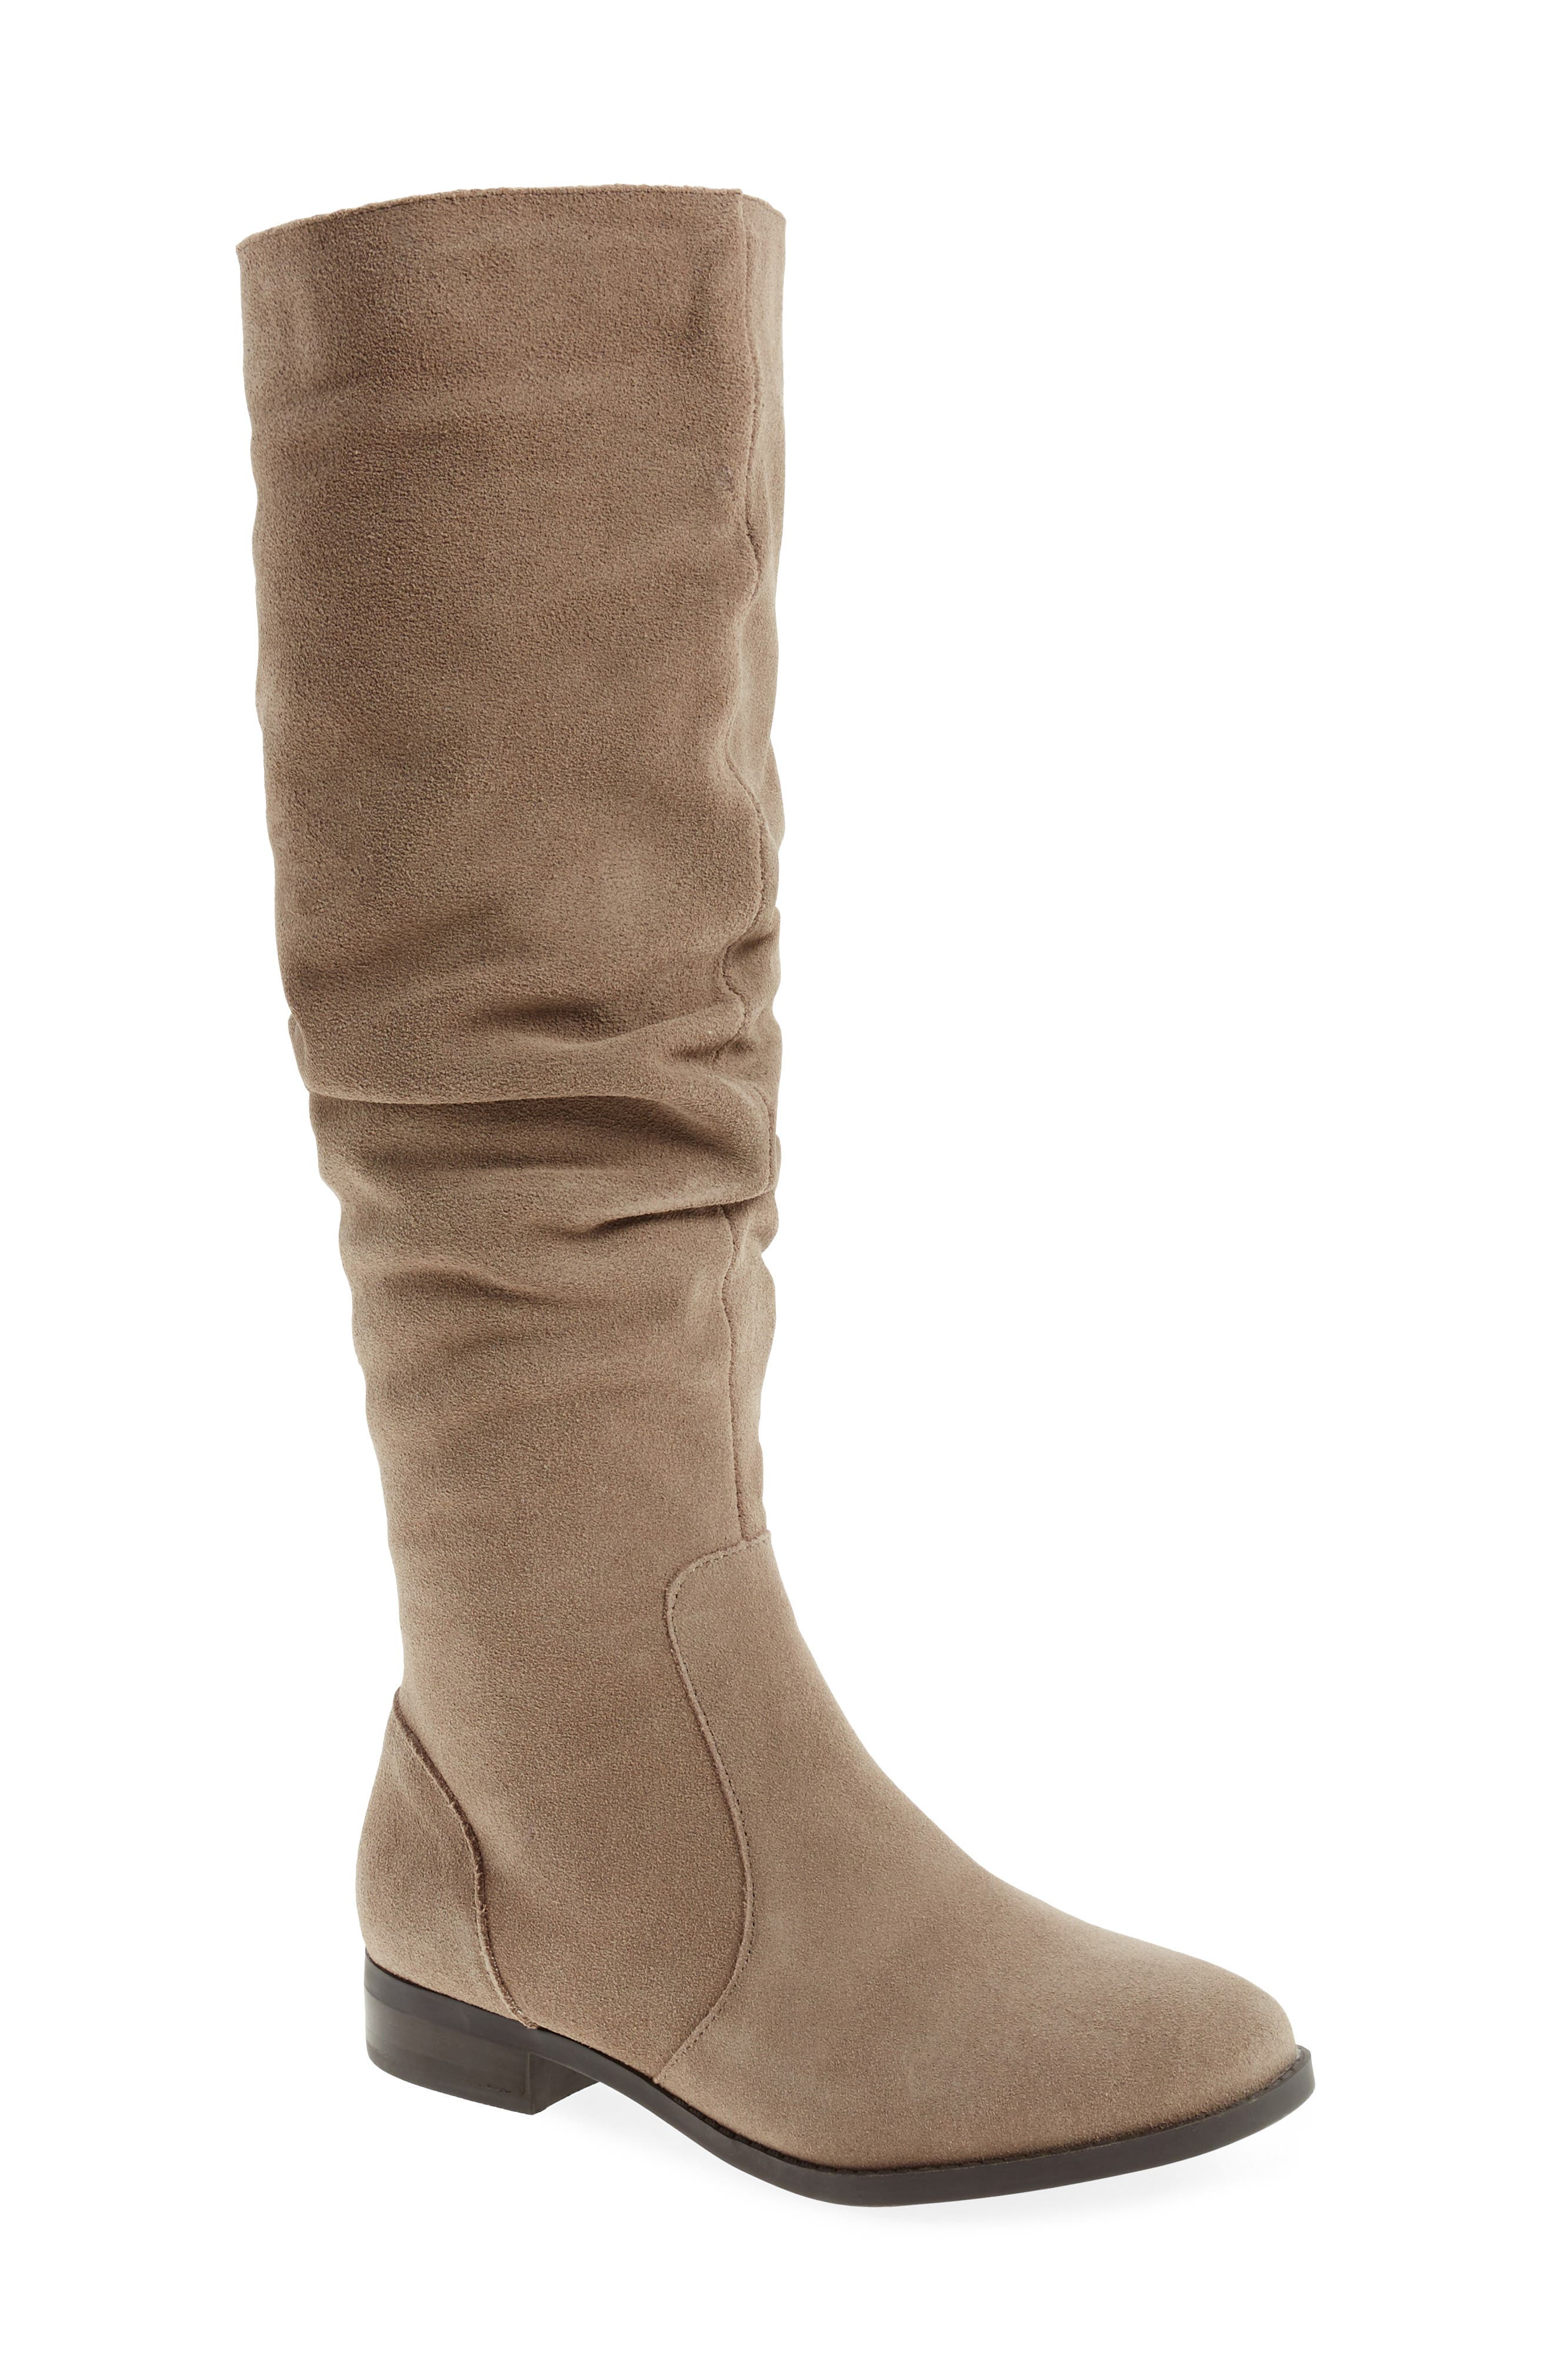 Main Image - Steve Maddon Beacon Slouchy Knee-High Boot (Women) (Wide Calf)